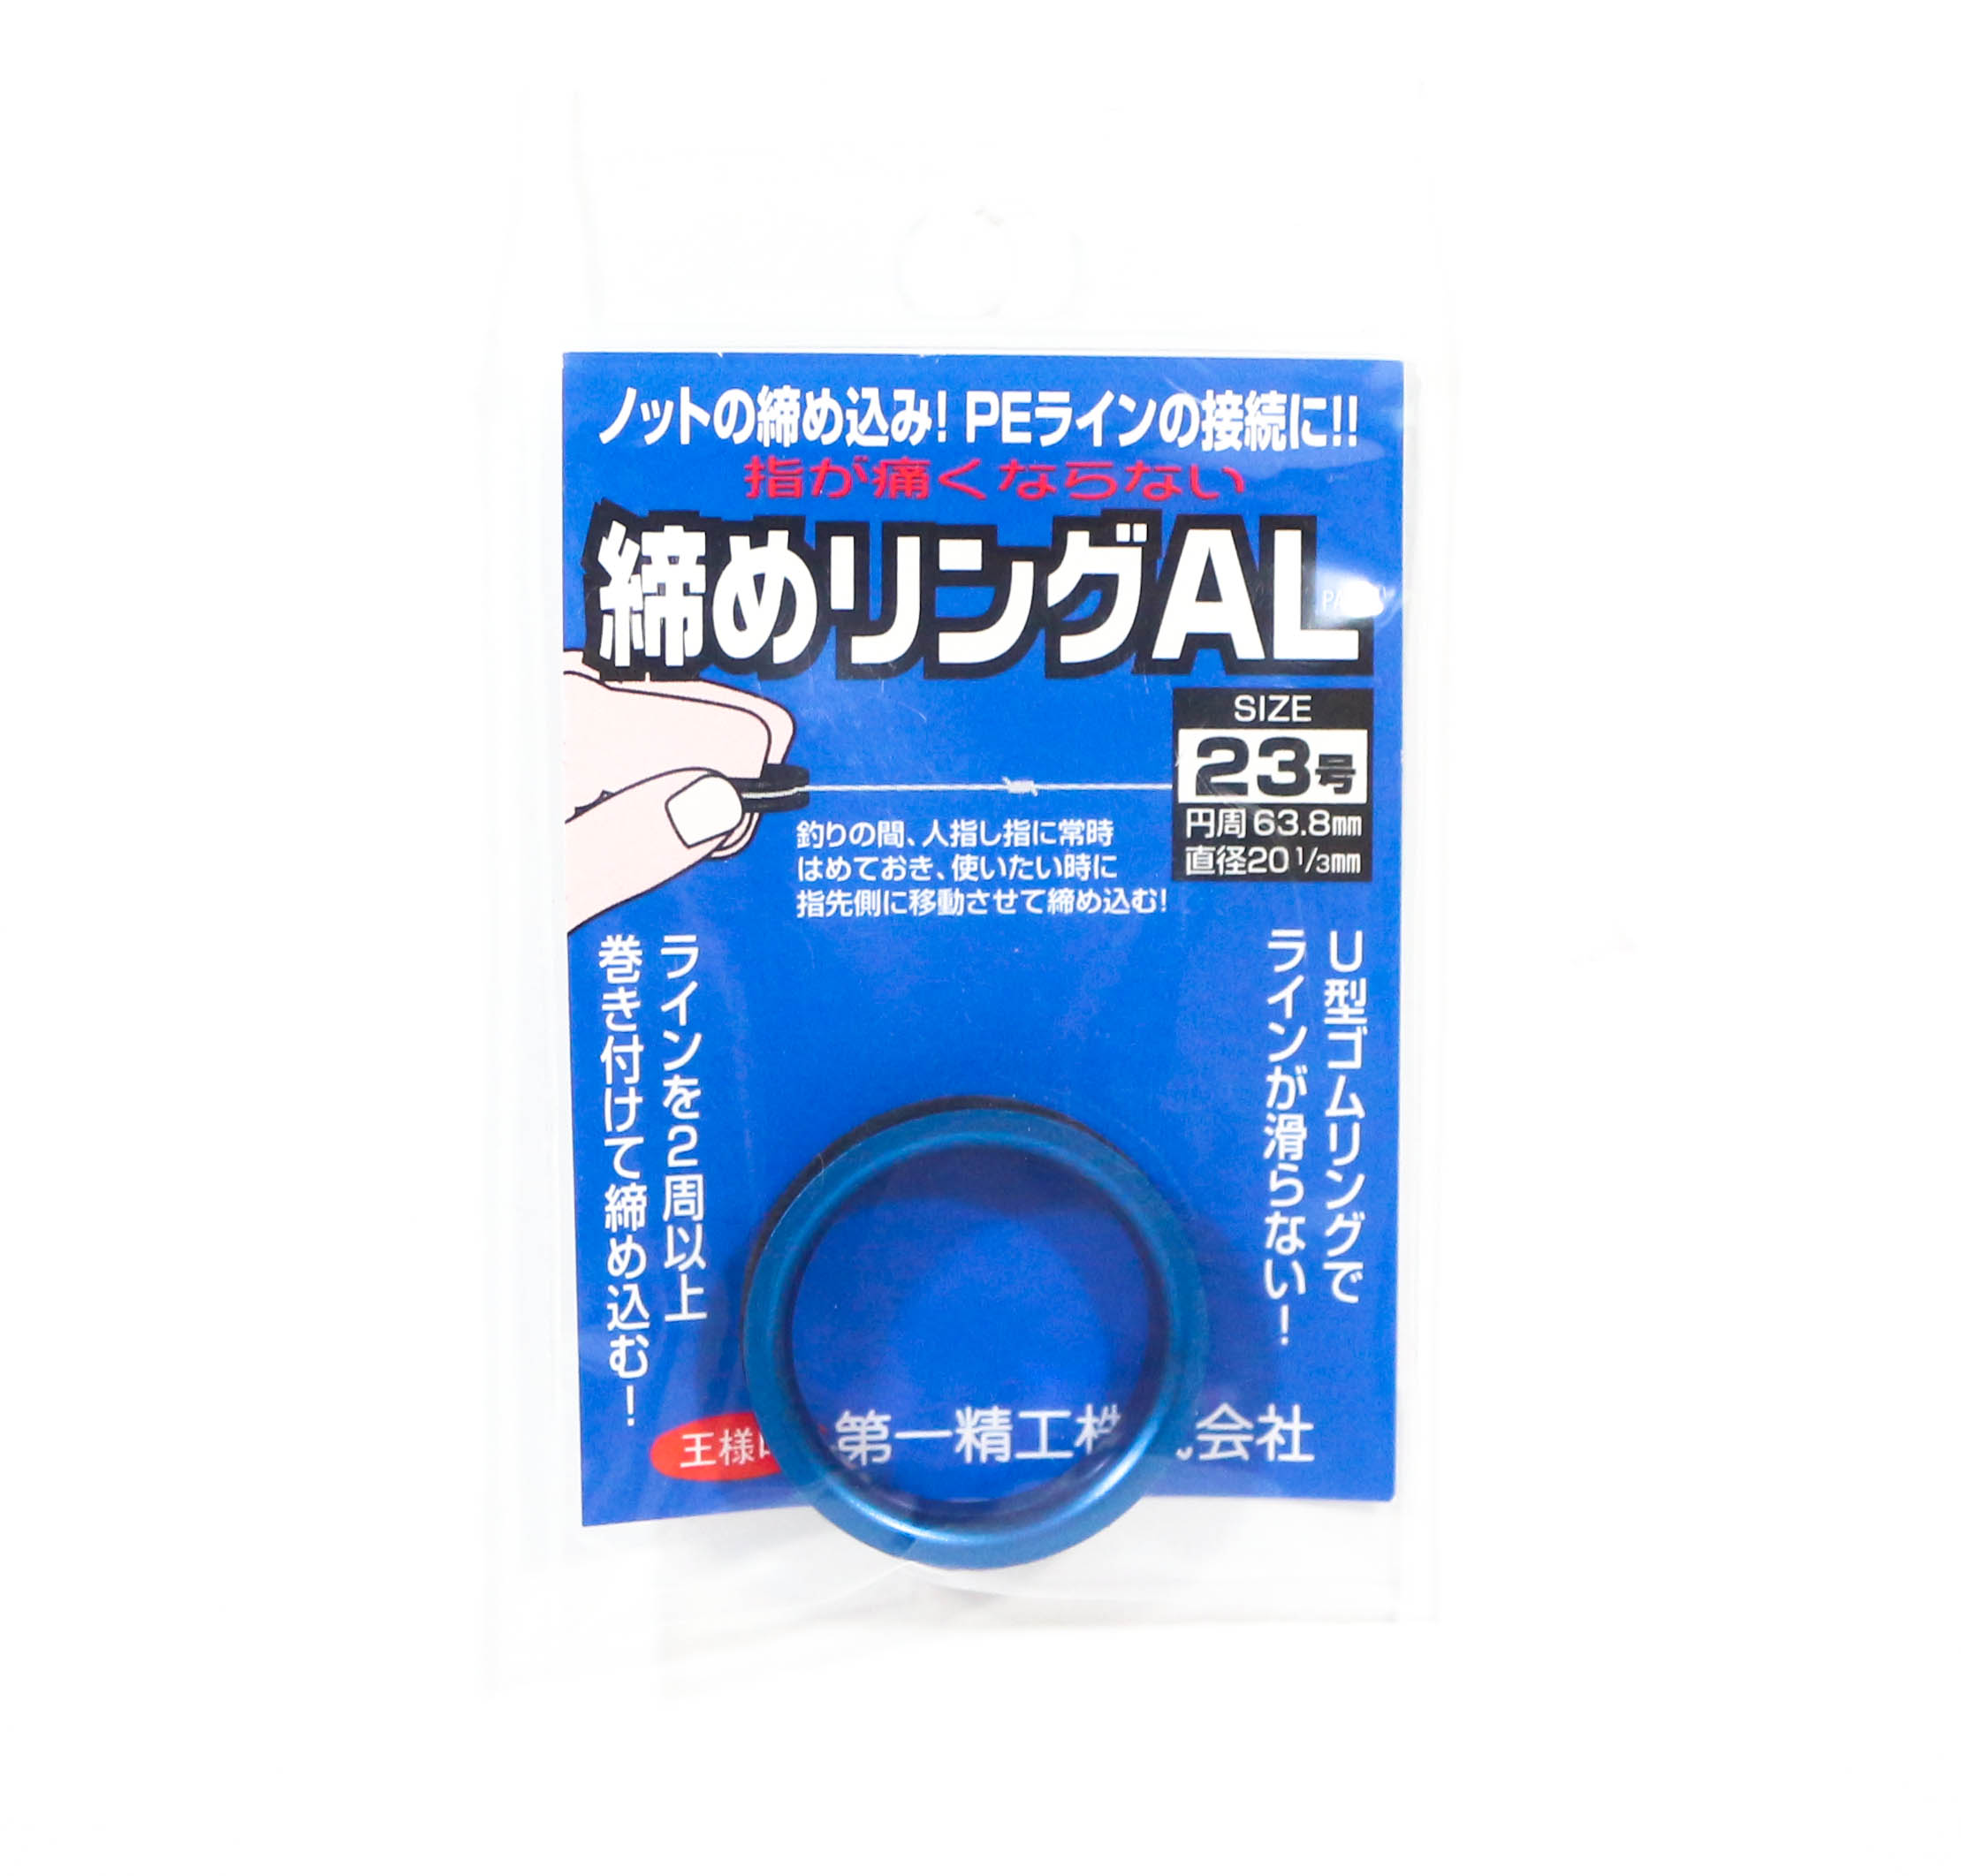 Daiichi #33287 AL 23 Knot Tightener Rubber Grip Ring 63.8mm Blue (2871)